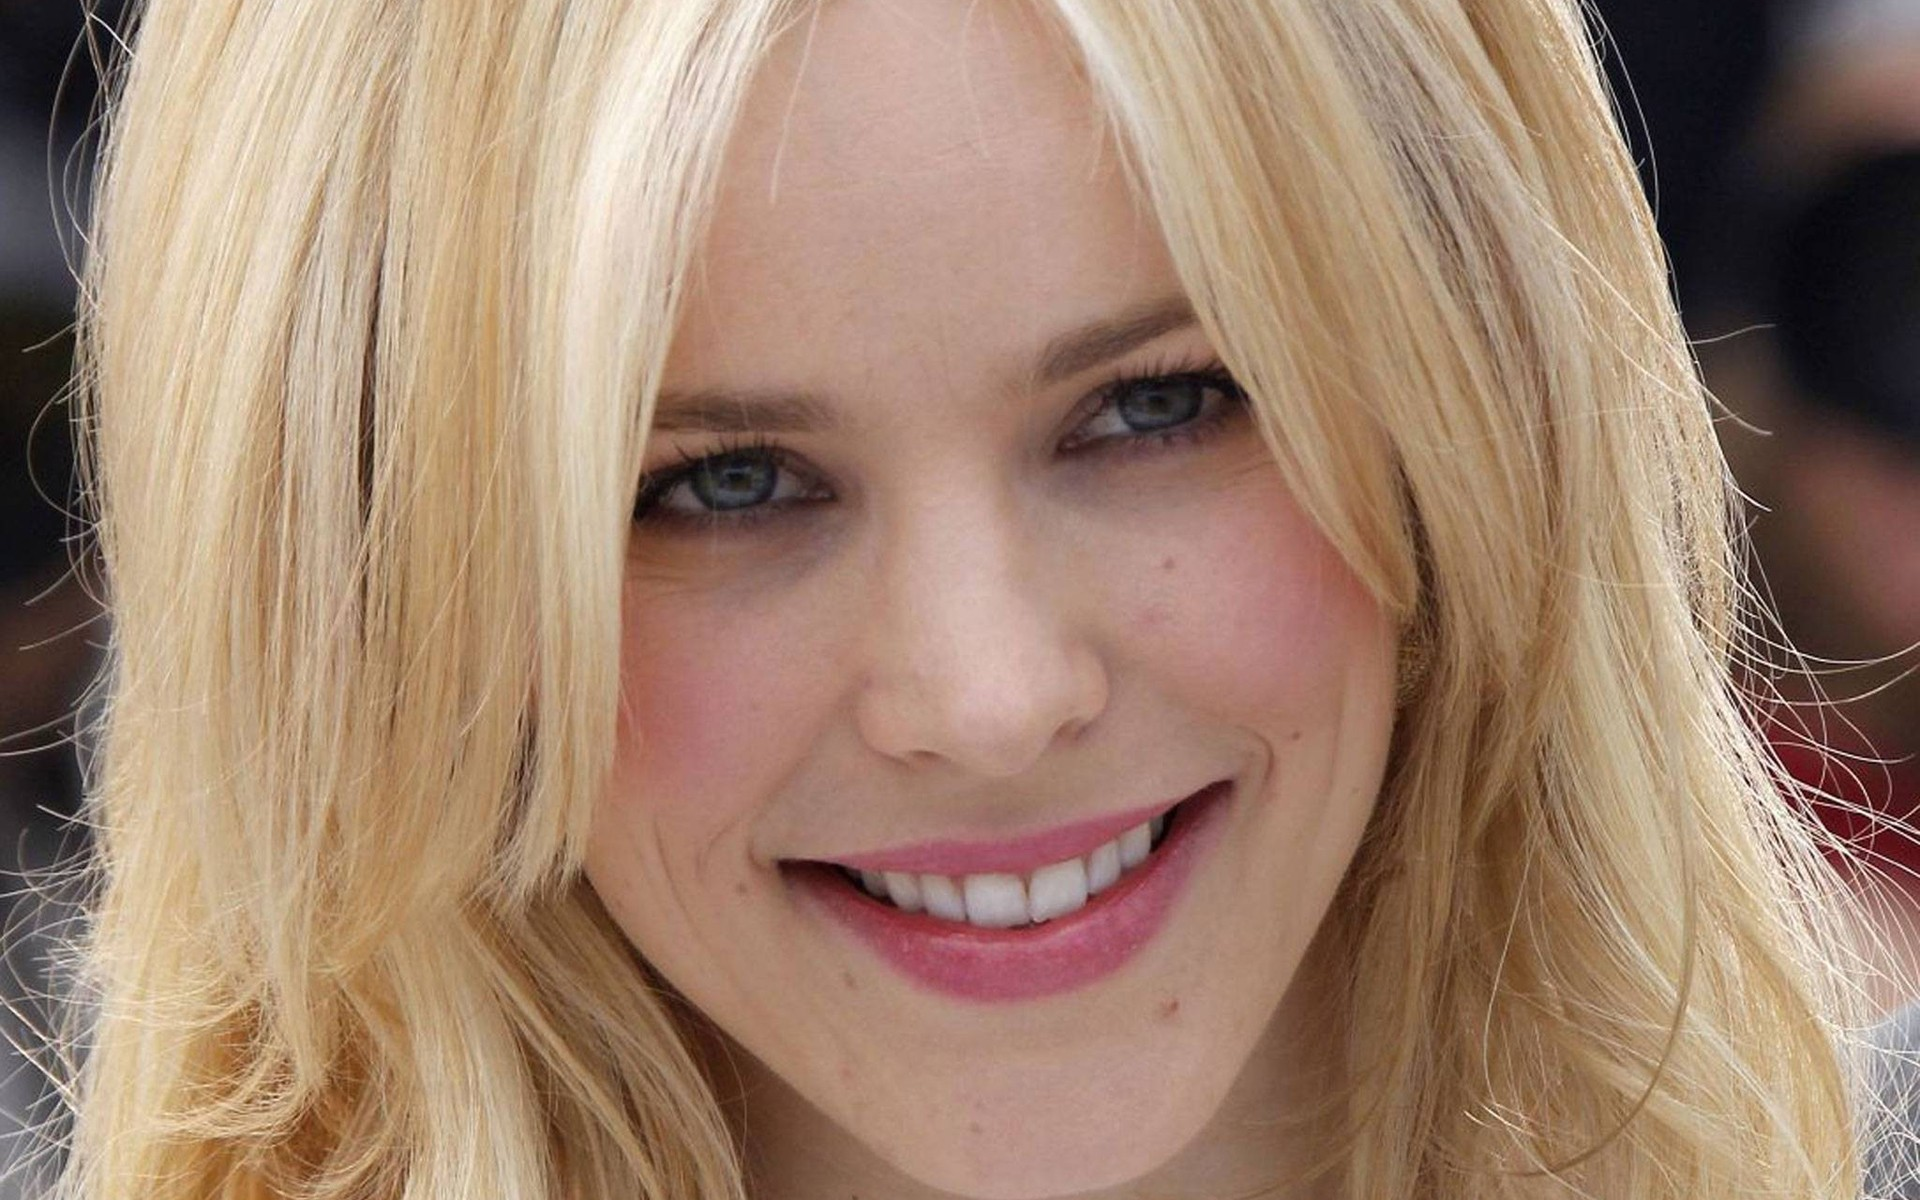 rachel mcadams face wallpaper 51258